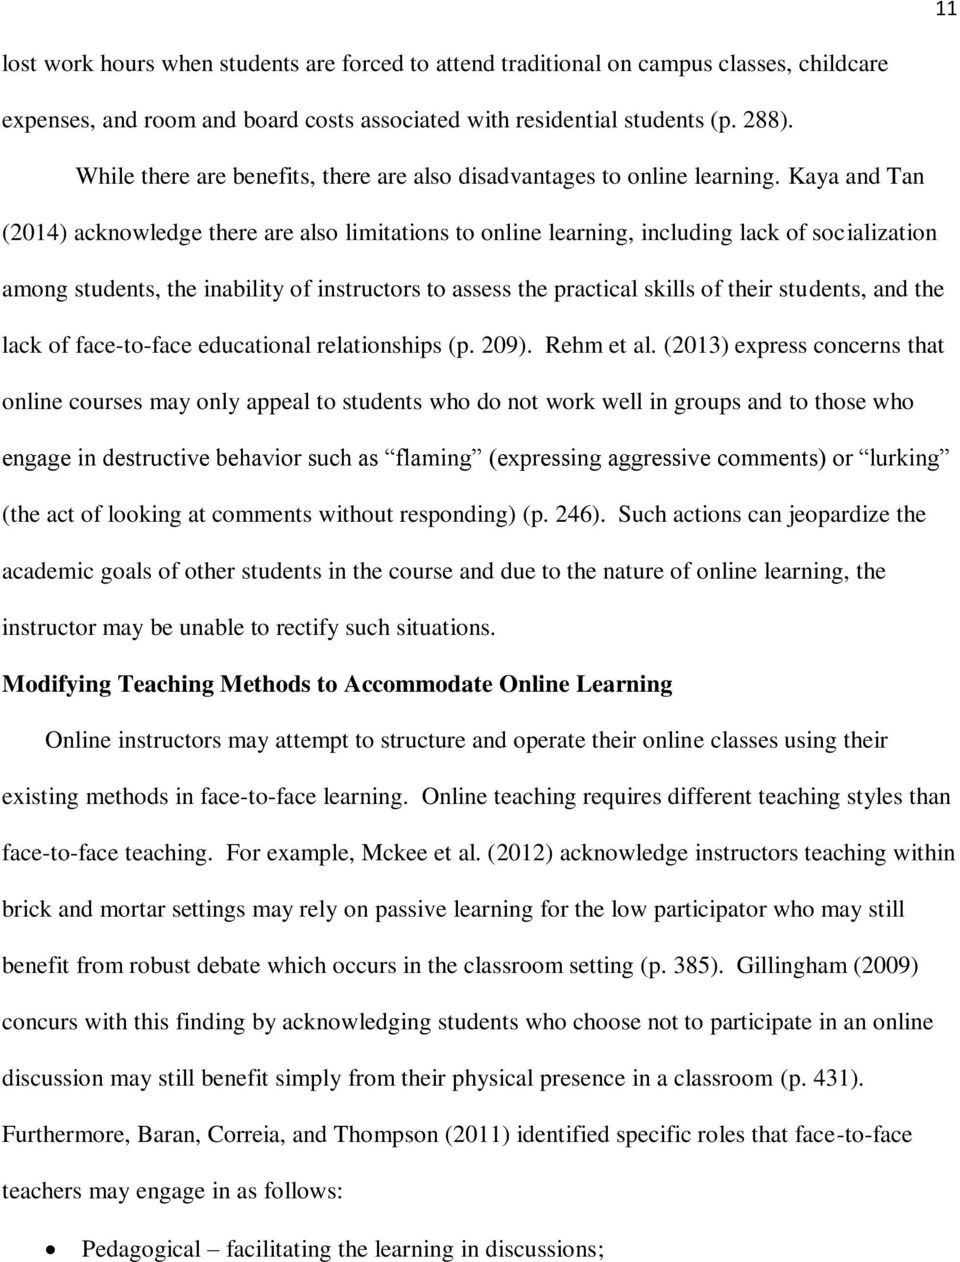 Kaya and Tan (2014) acknowledge there are also limitations to online learning, including lack of socialization among students, the inability of instructors to assess the practical skills of their